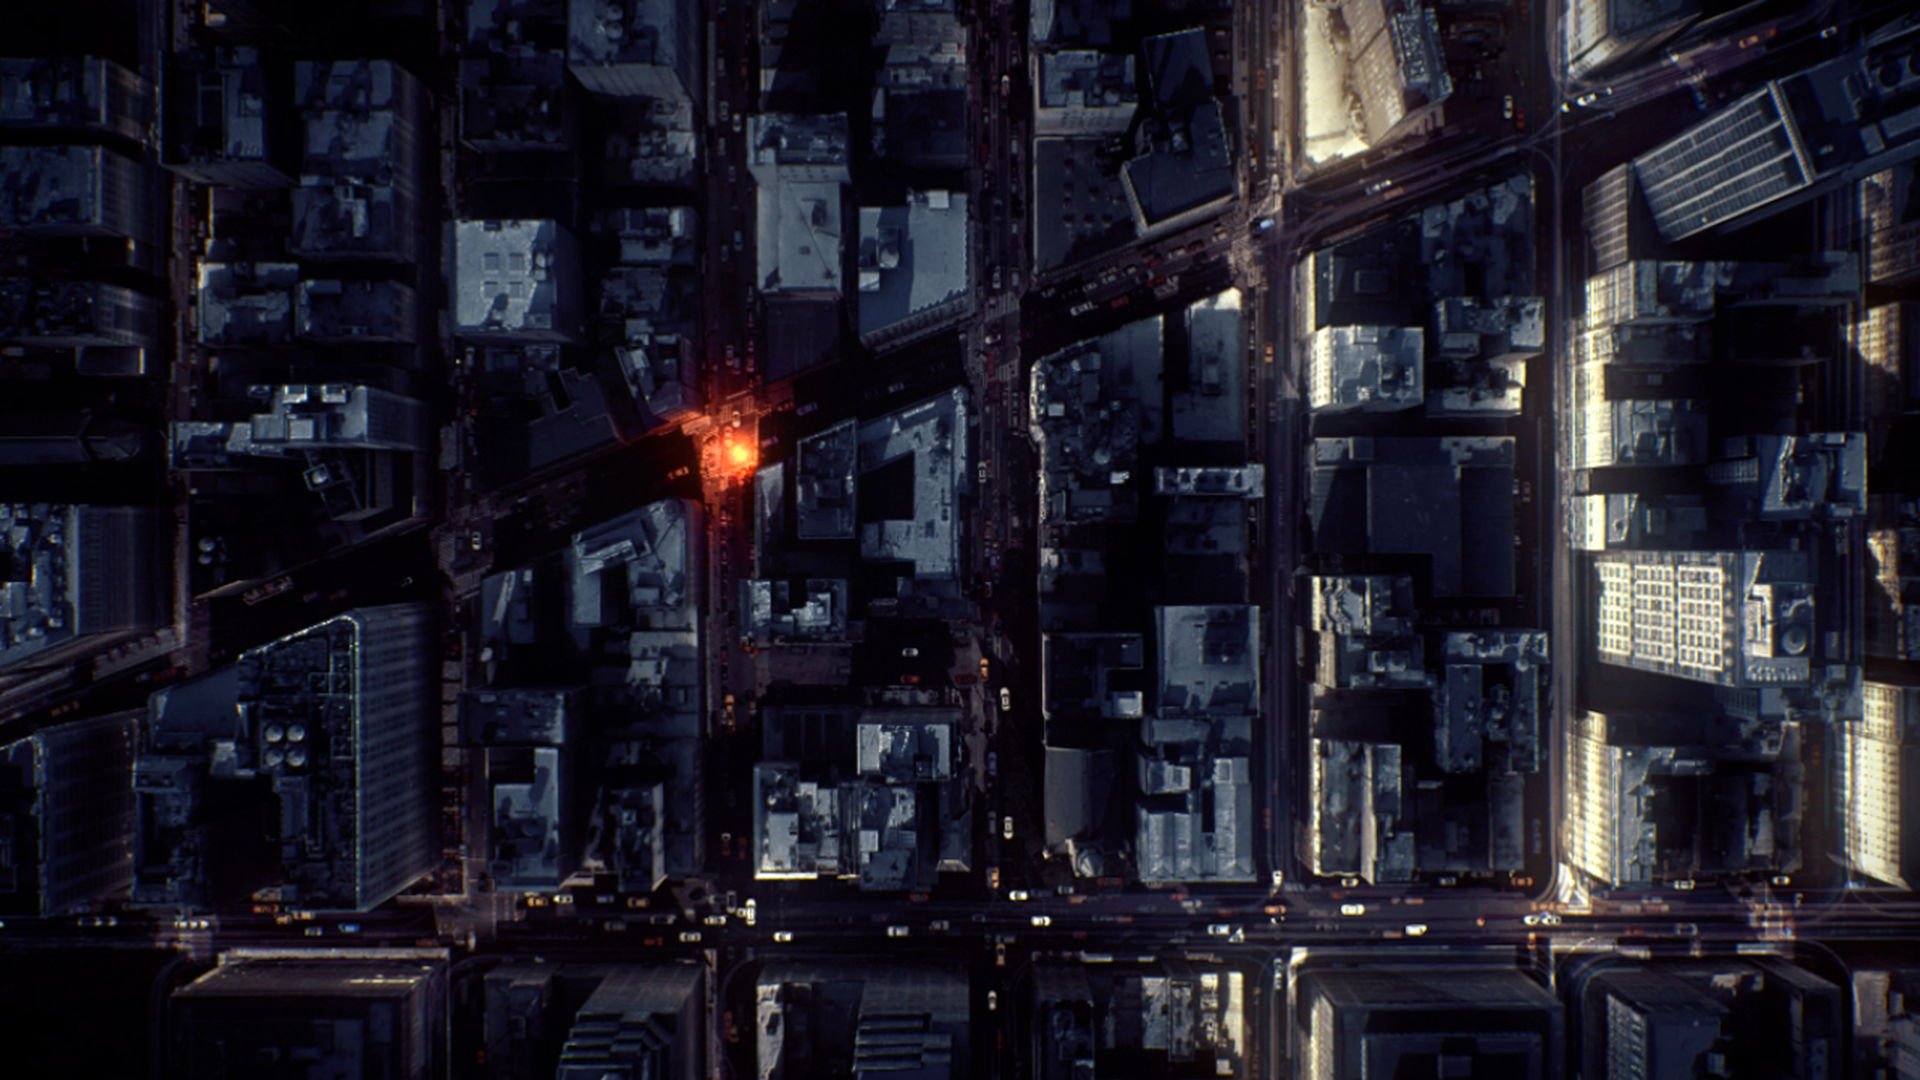 Aerial shot of a city with an orange luminous particle glowing